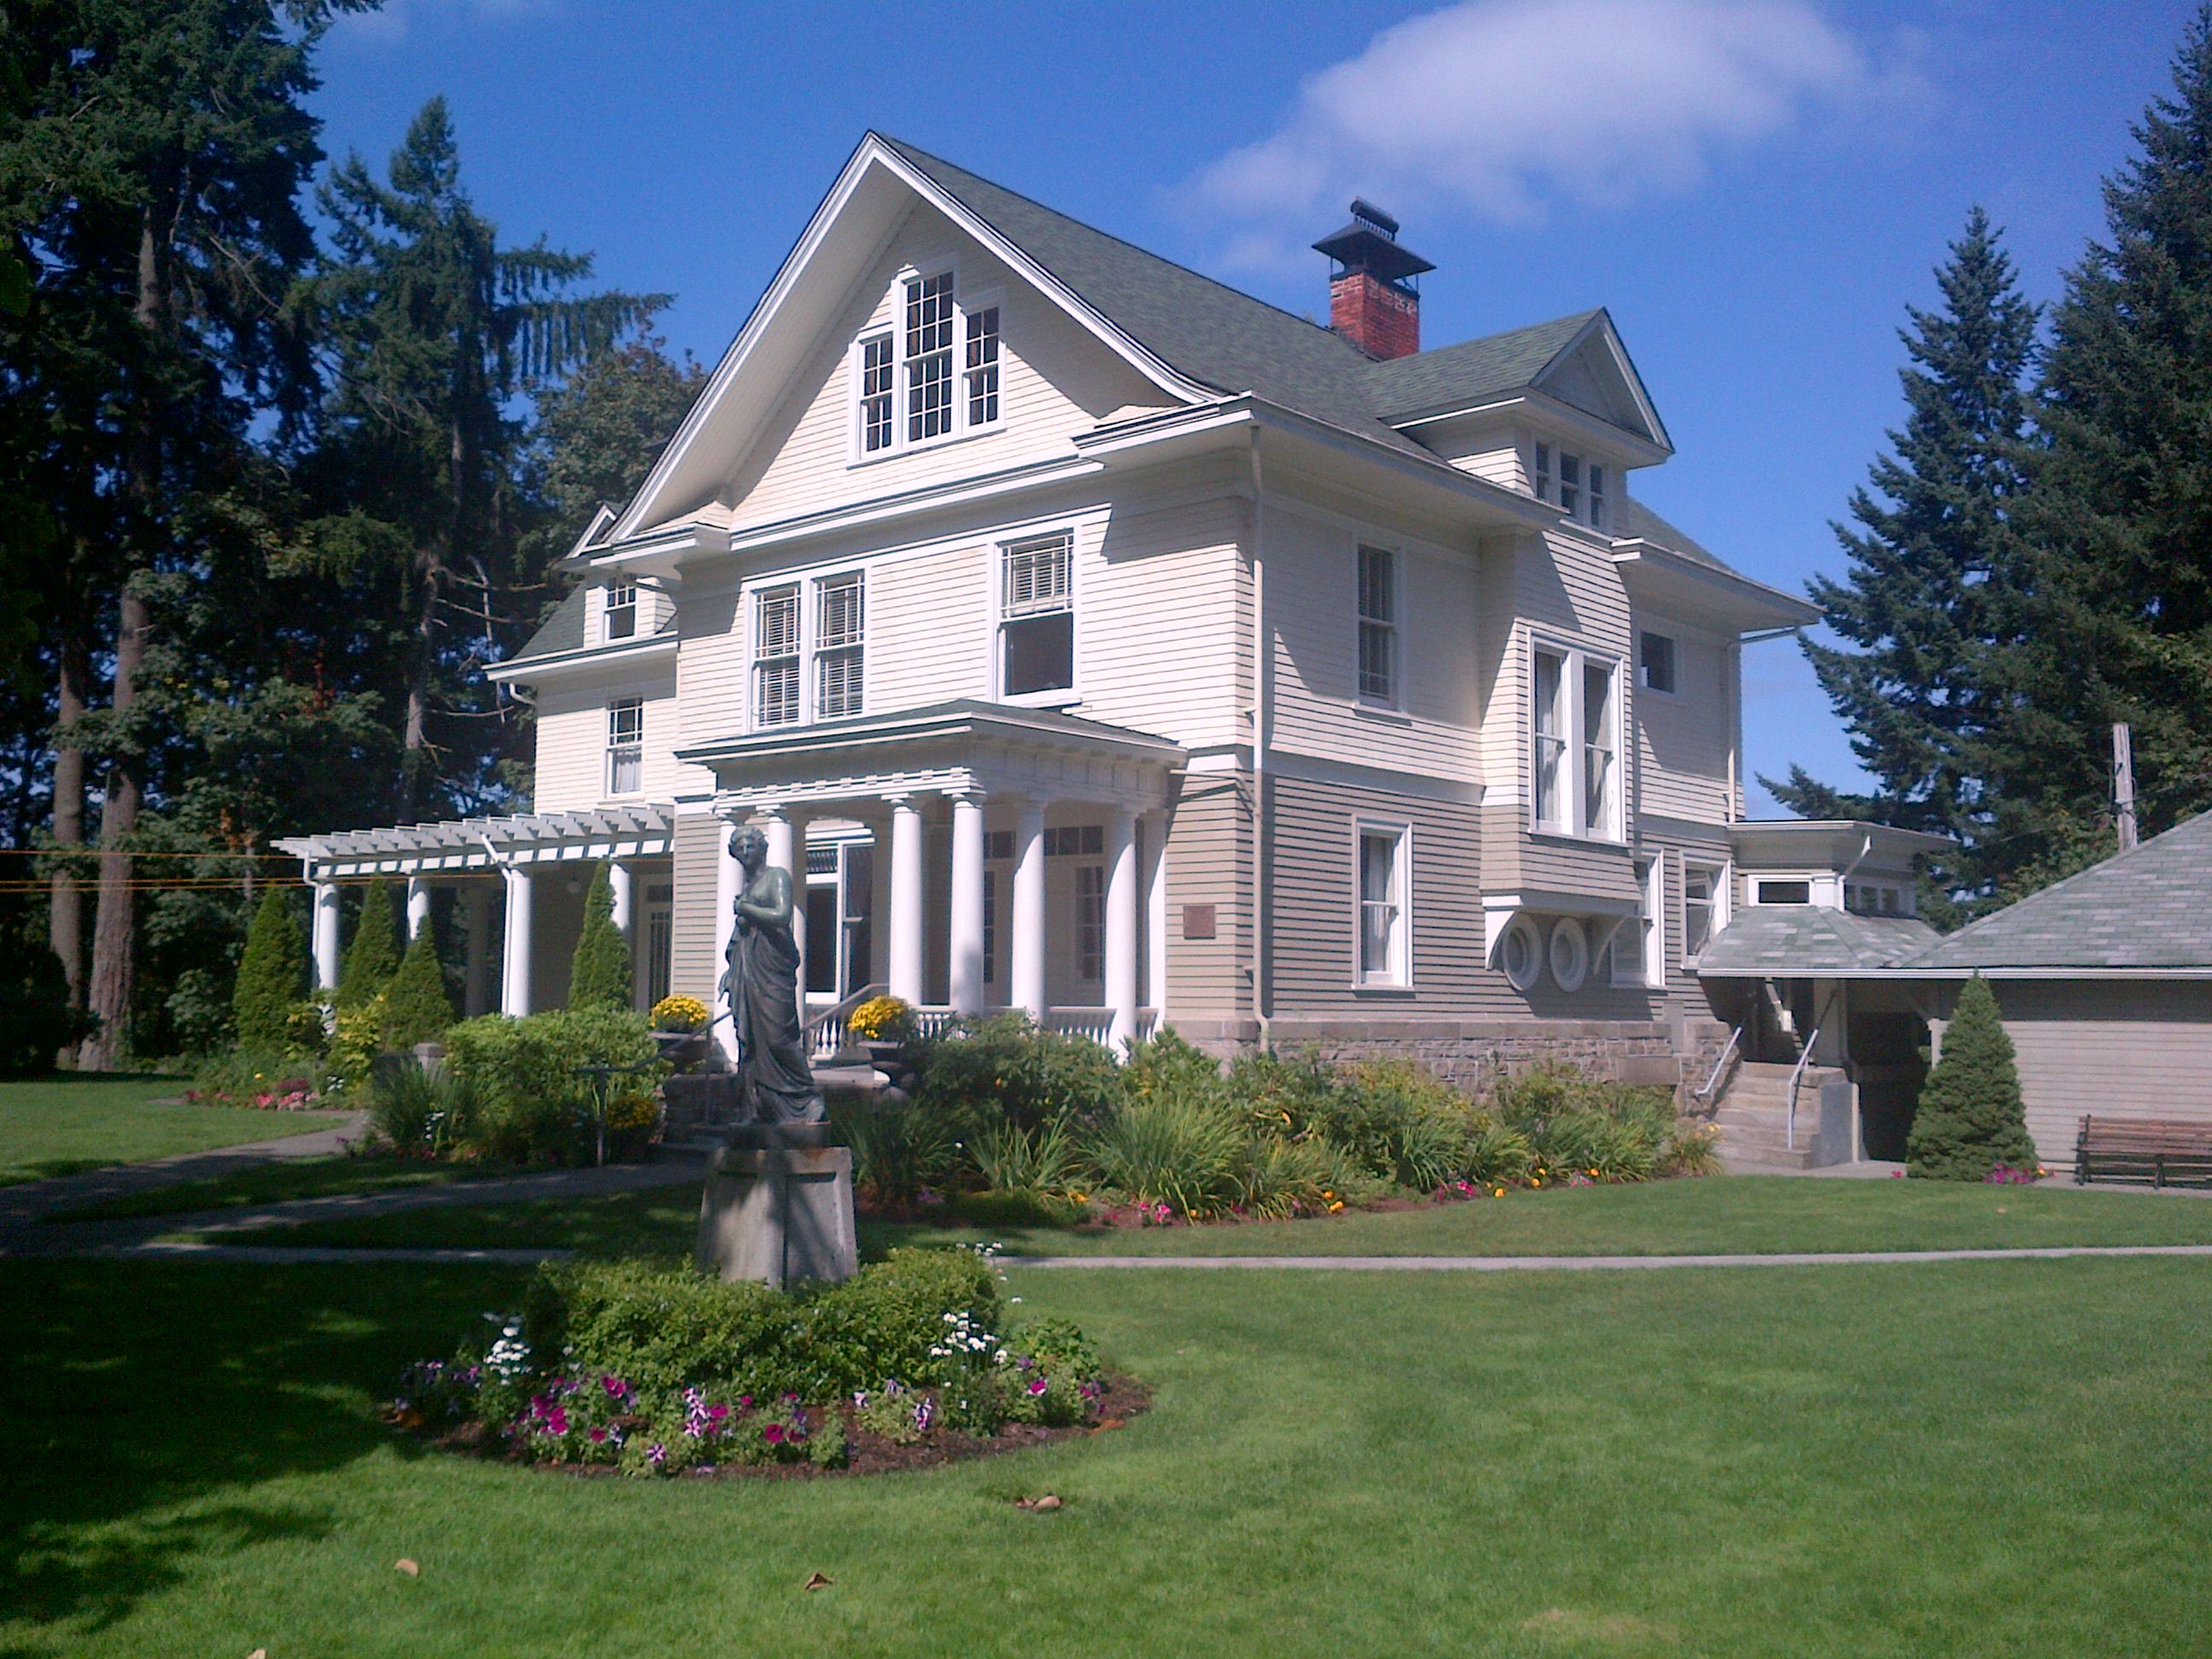 The Schmidt House, built in 1904 by brewer Leopold Schmidt, is one of Olympia's most historic homes.